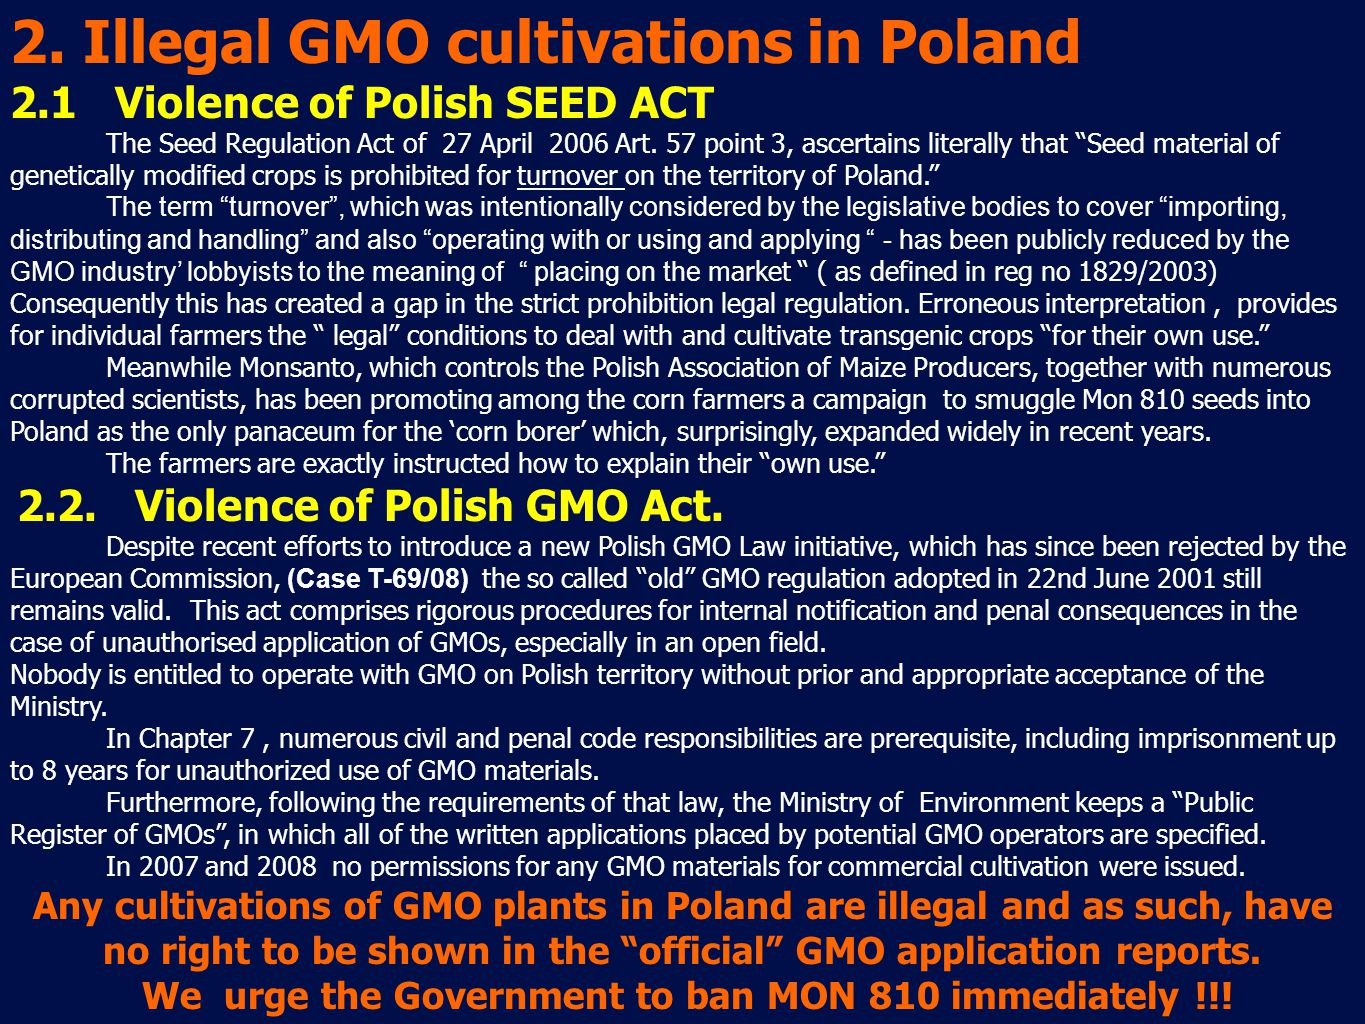 2. Illegal GMO cultivations in Poland 2.1 Violence of Polish SEED ACT The Seed Regulation Act of 27 April 2006 Art. 57 point 3, ascertains literally t